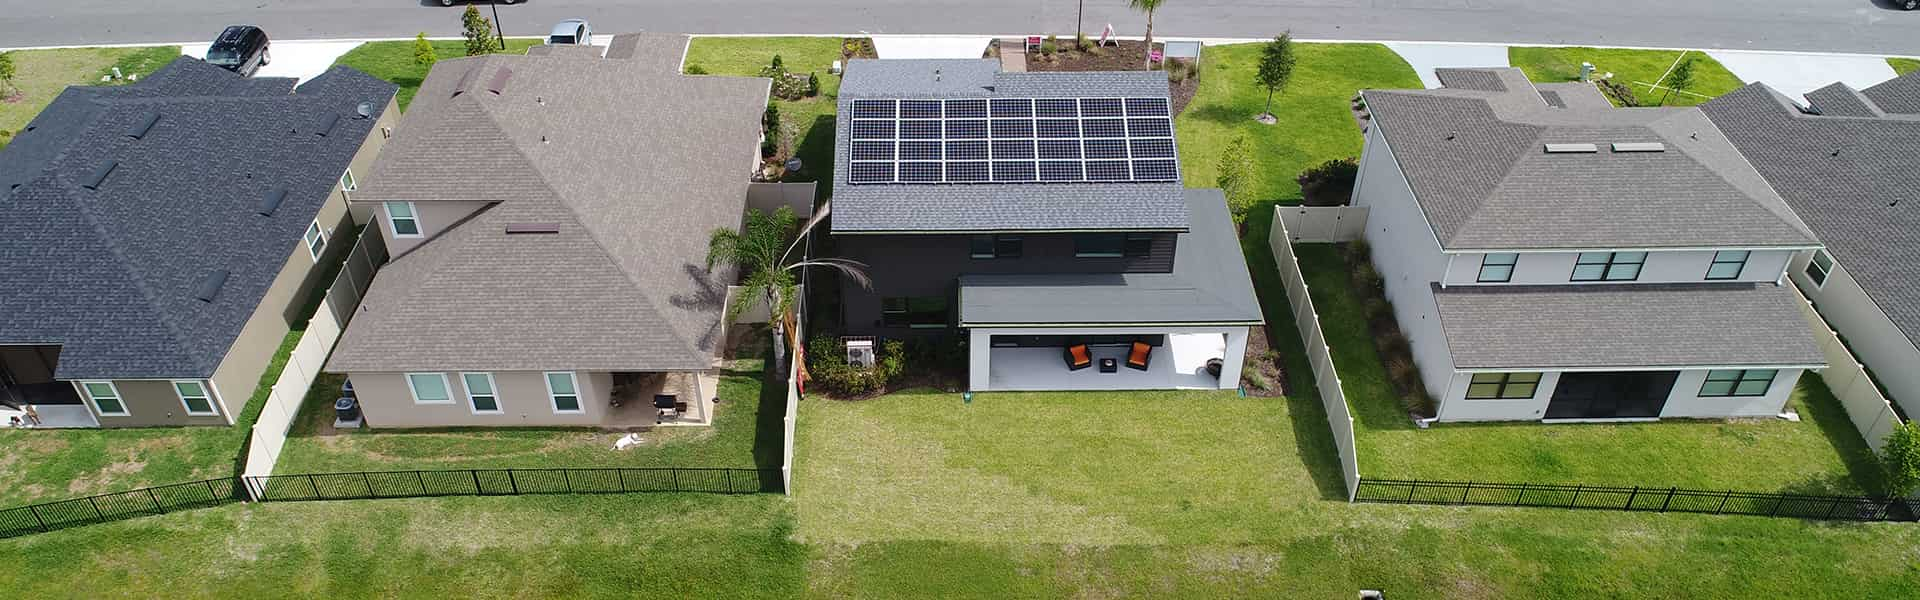 TerraWise Homes is the No.1 Net Zero Energy Builder in Northeast Florida.